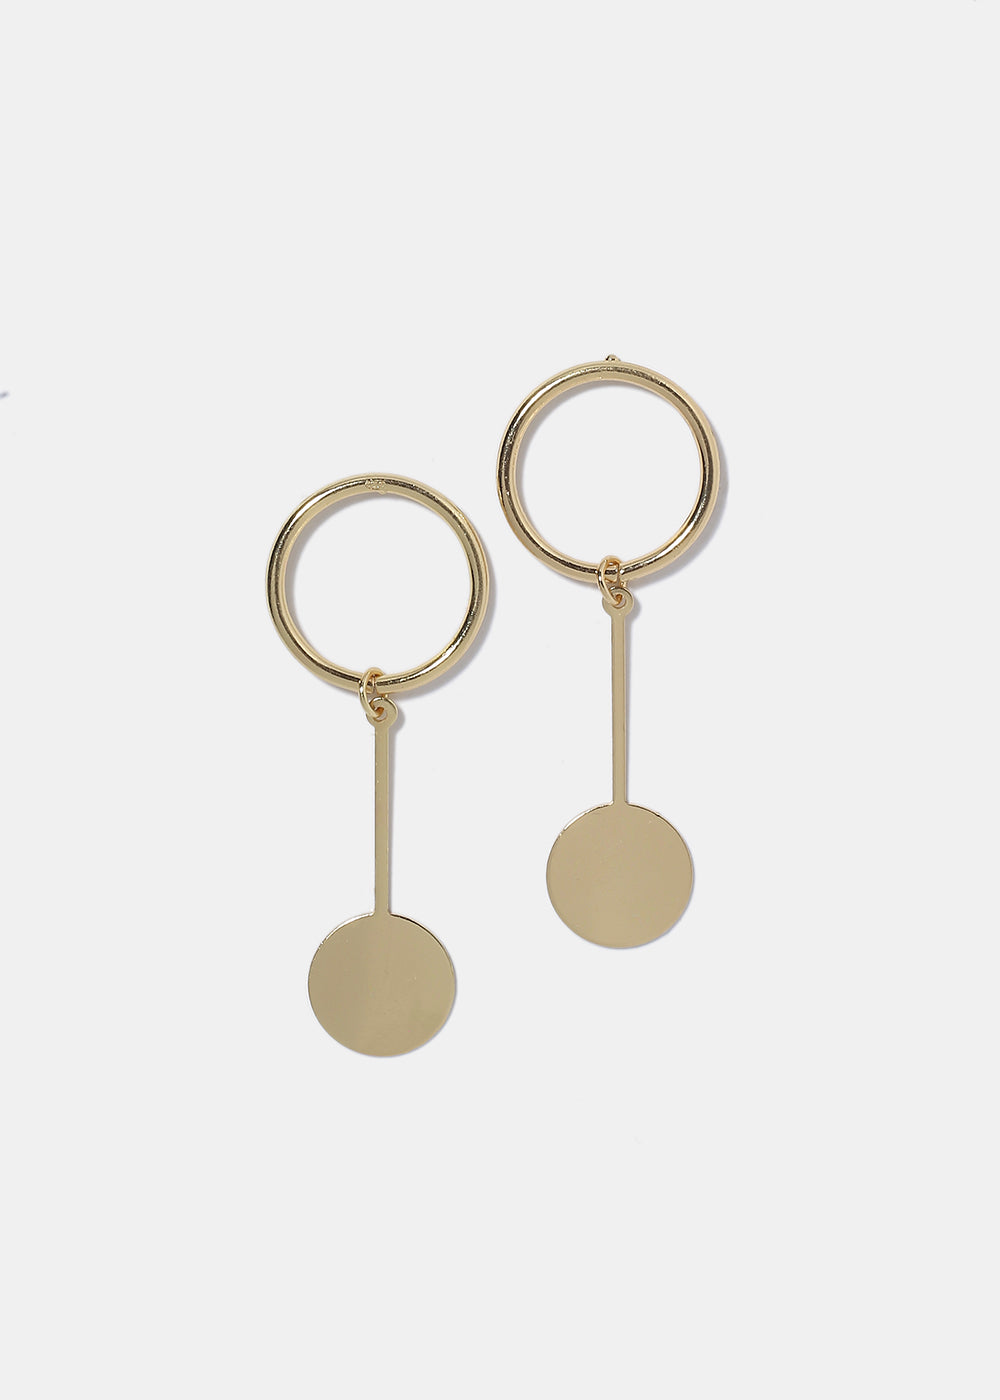 multi circular gold drop earrings bonas circle jewellery oliver mirnesa